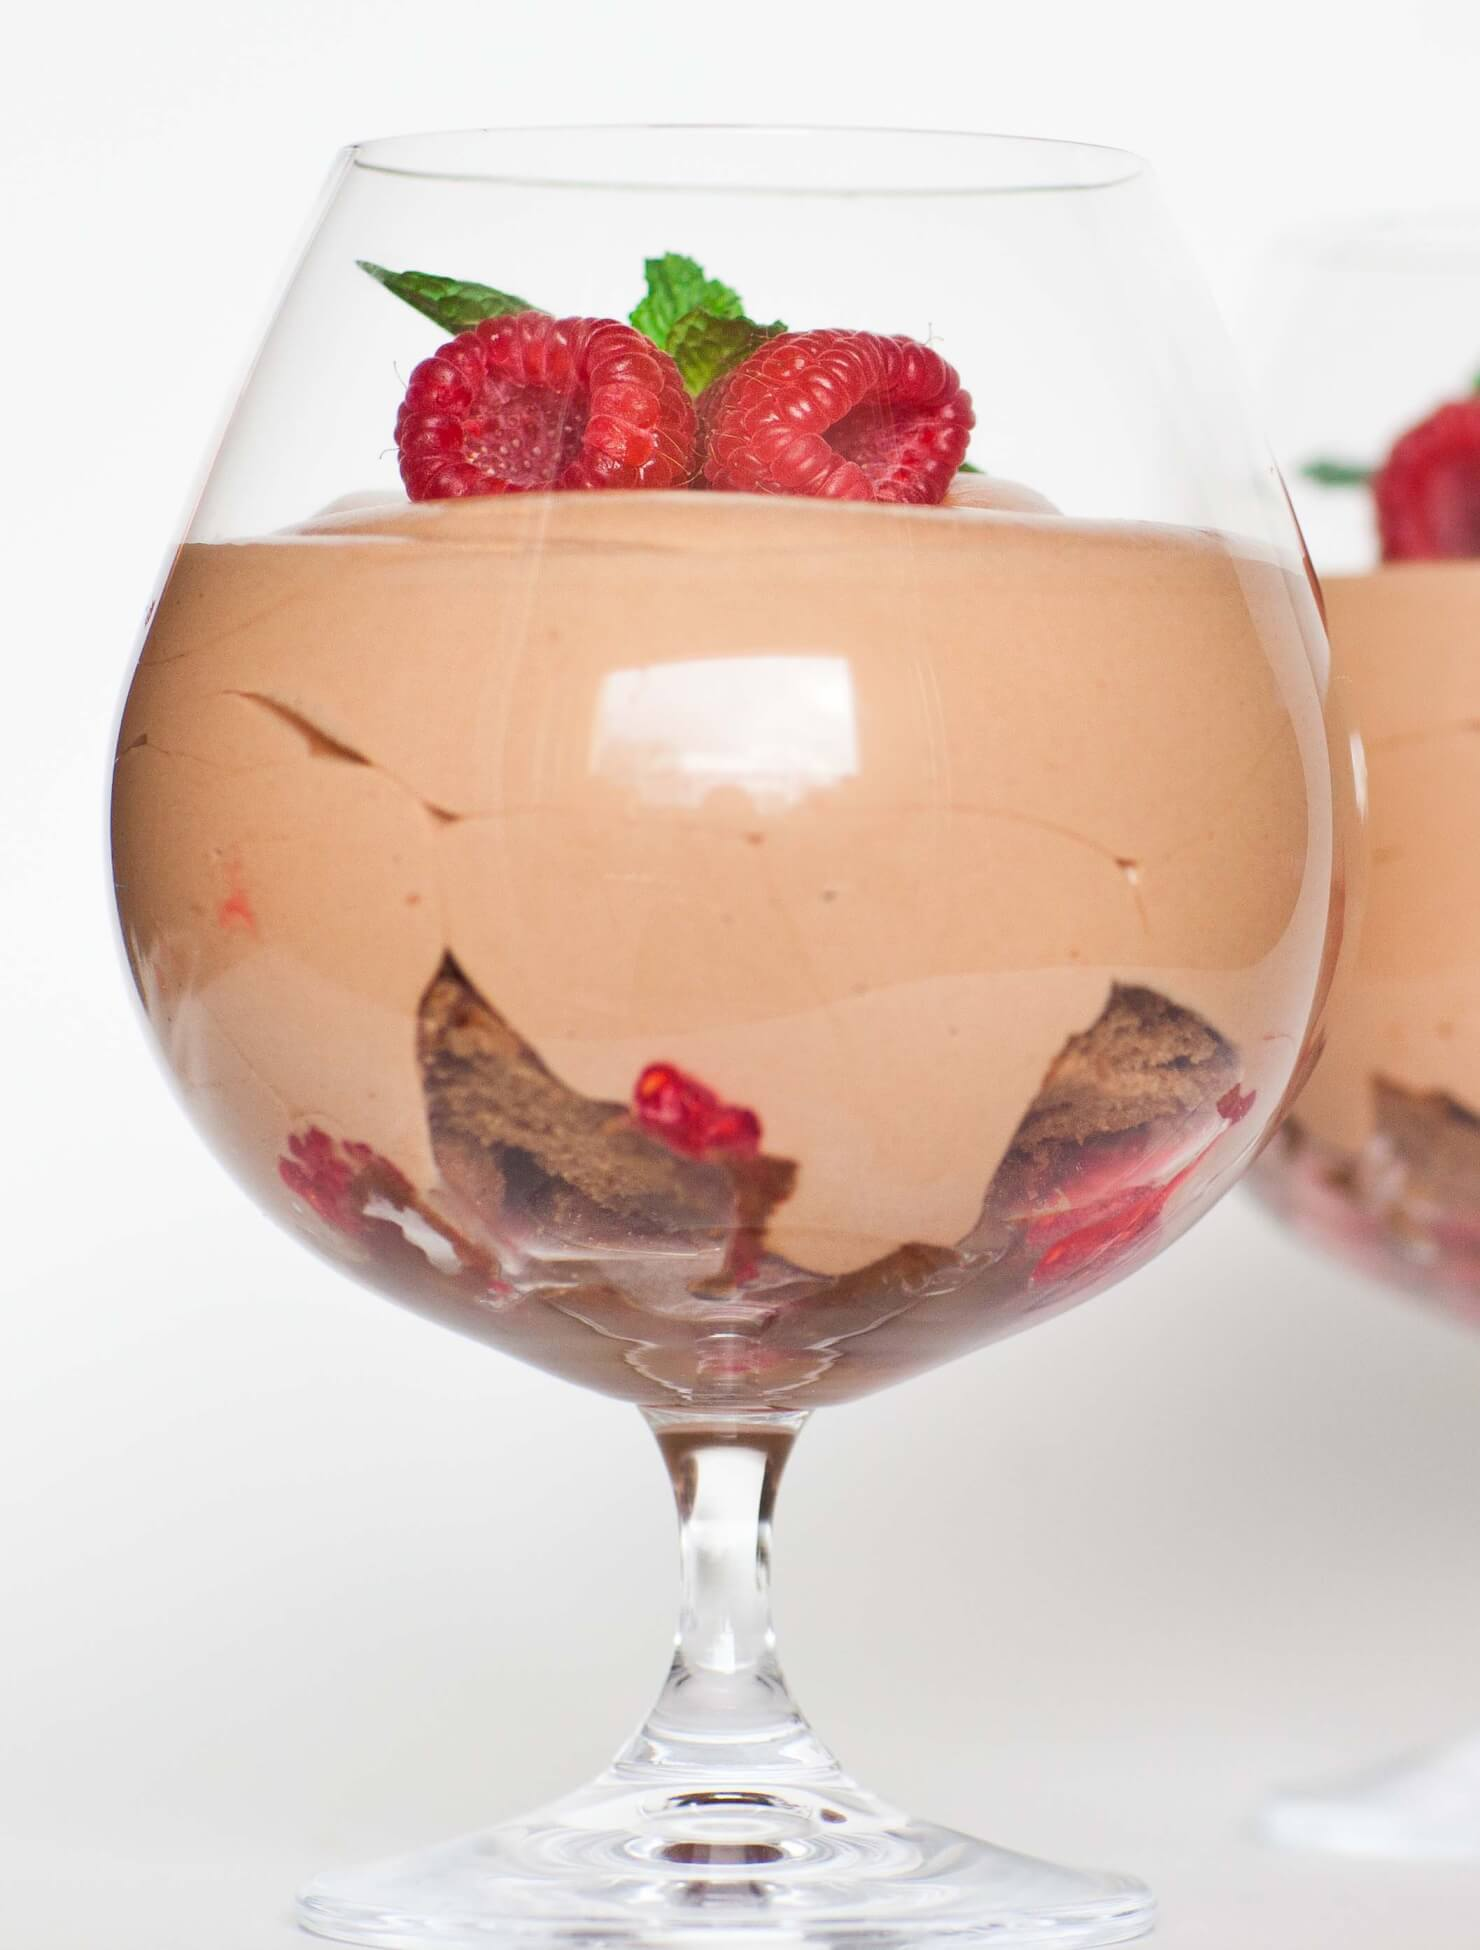 chocolate mousse with raspberries and chocolate cake